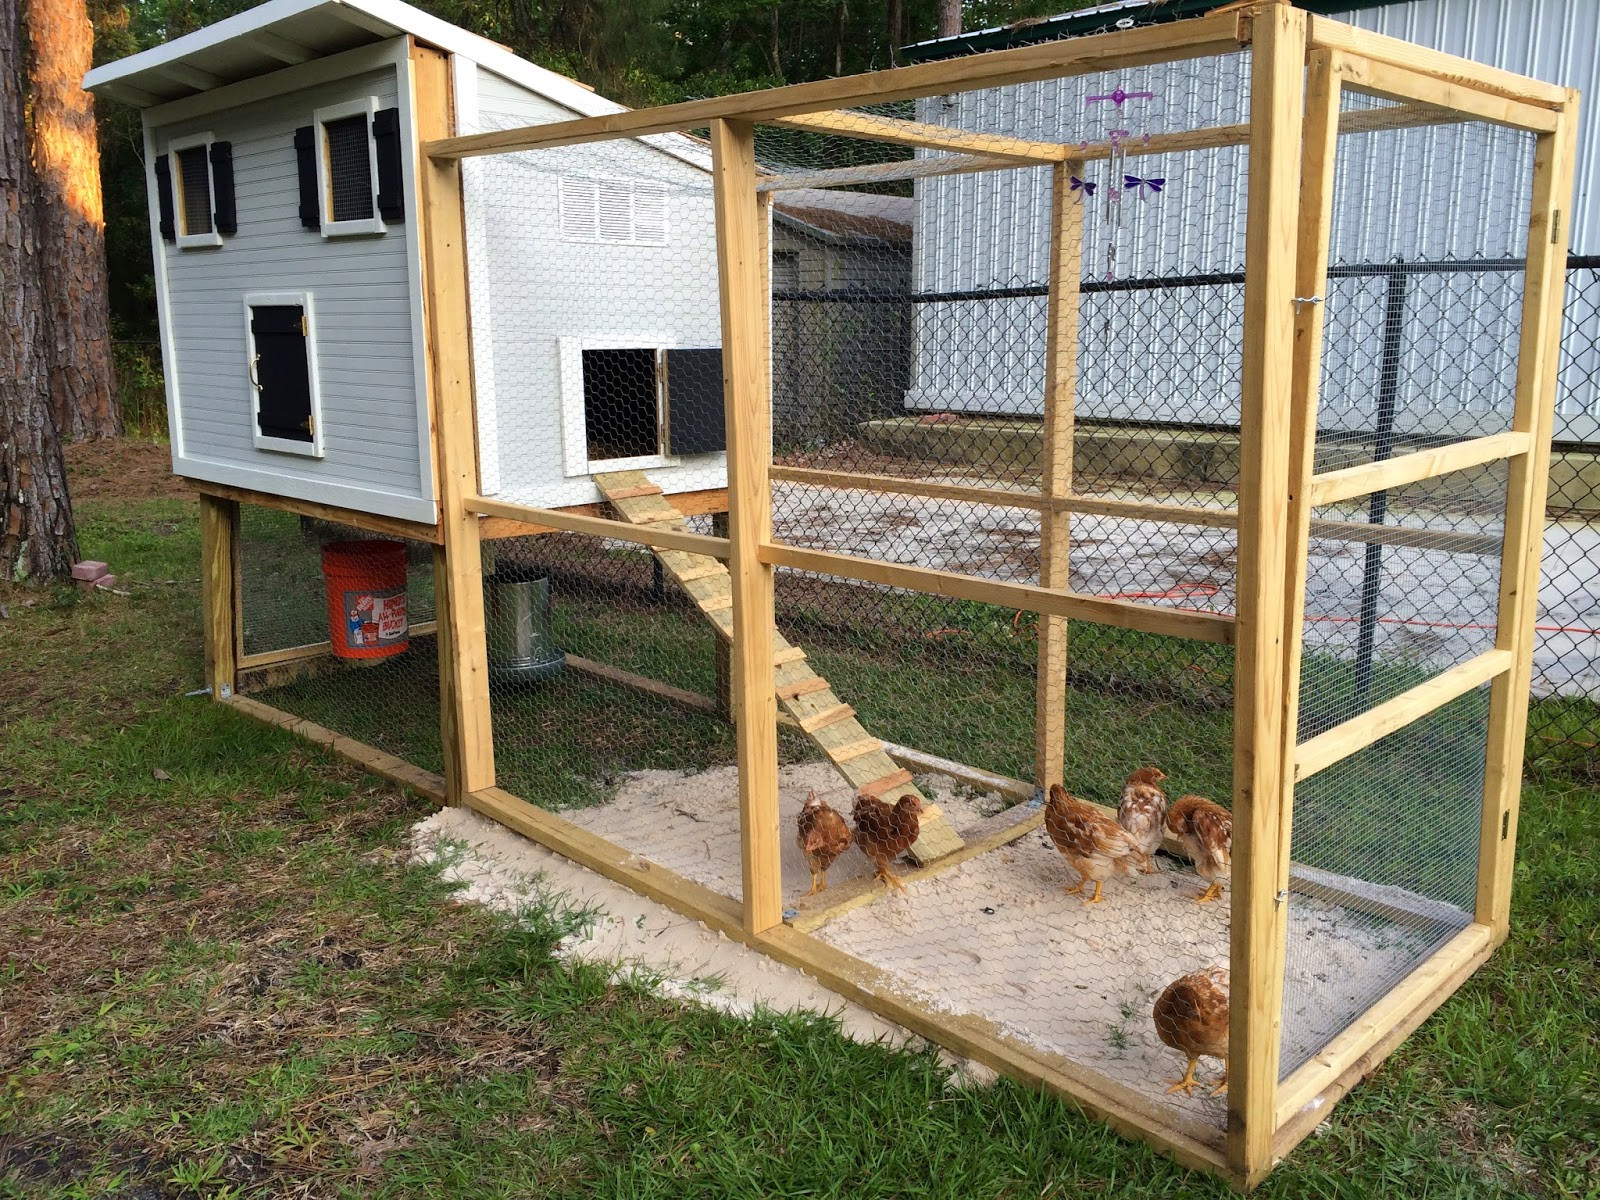 Best ideas about DIY Chicken Run . Save or Pin Fabulously Vintage I built a chicken coop and i want to Now.